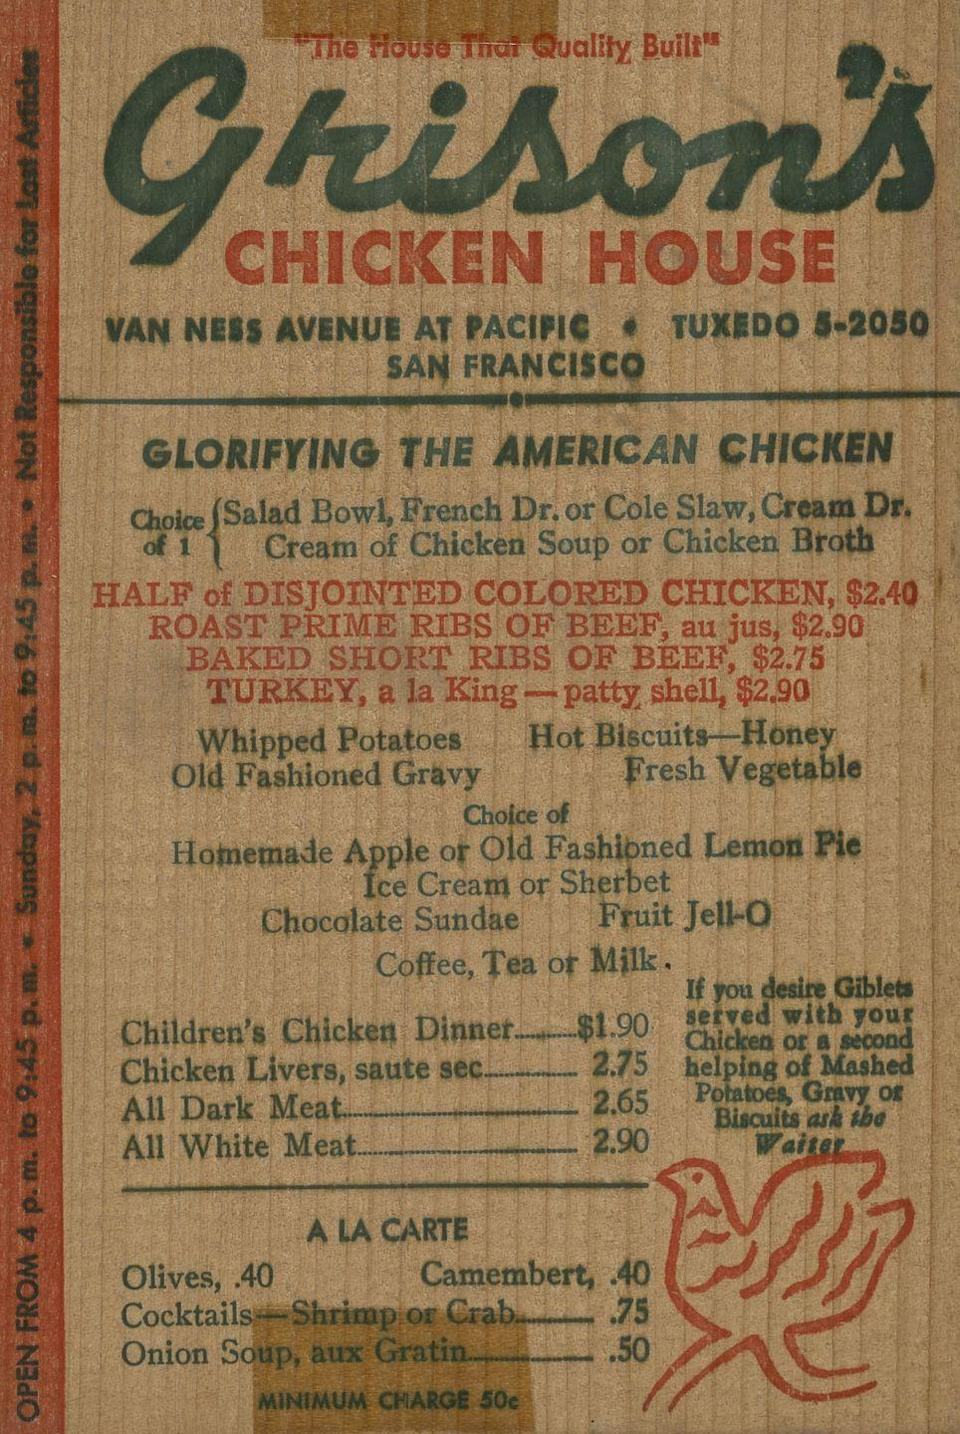 <p>Multi-page restaurant menus that you can browse like a book were unheard of back in the day. Eateries offered a concise list of straightforward mains, sides, and desserts with limited beverage options, and asking for substitutions would definitely get you a dirty look.</p>